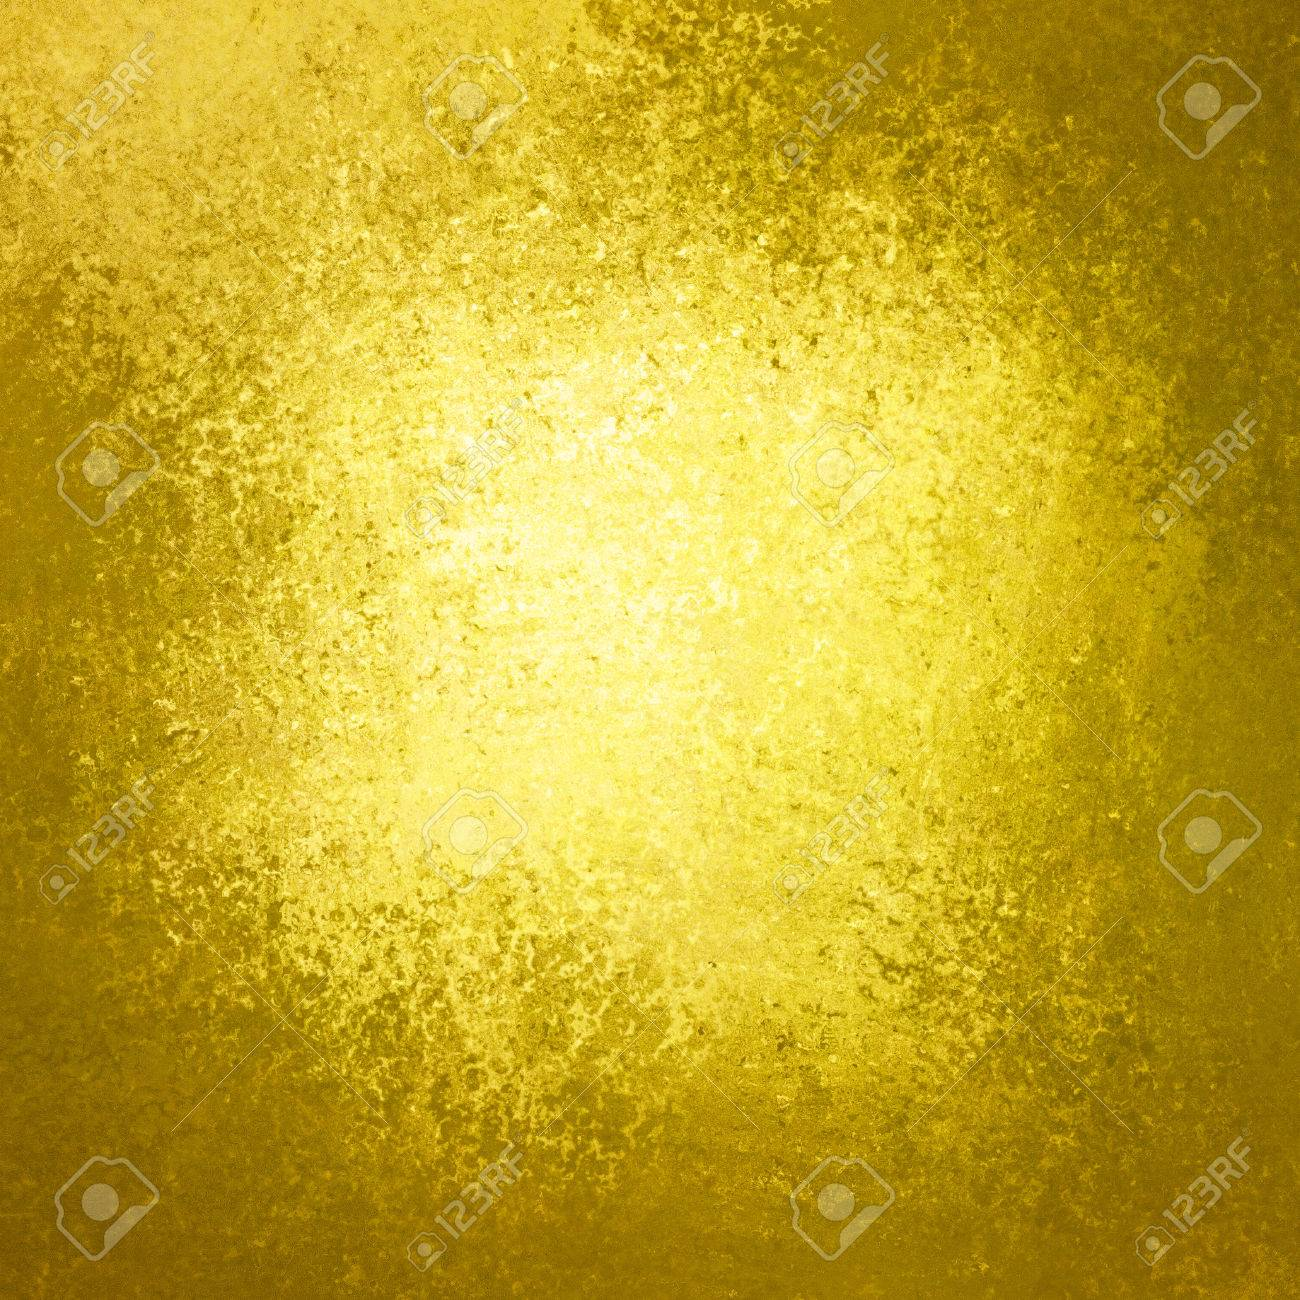 42c7402e220 old gold background color with brown border of vintage grunge texture and bright  yellow center design